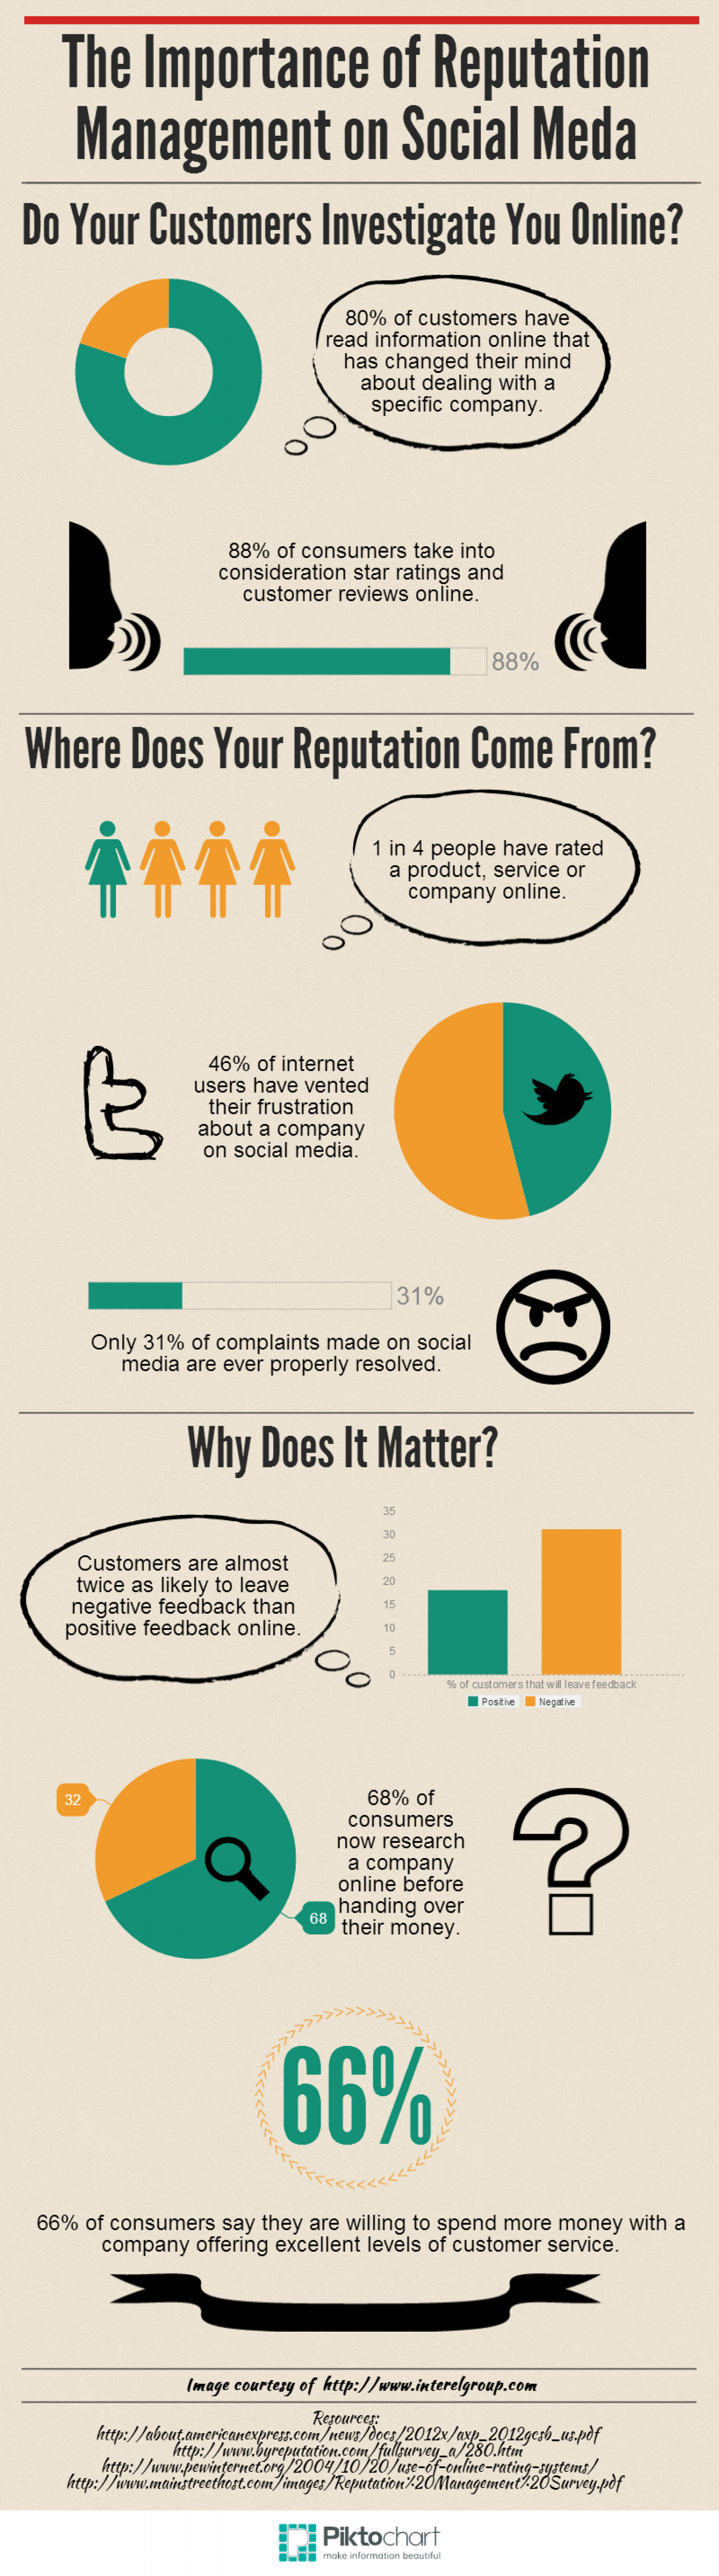 The Importance of Reputation Management on Social Media Infographic